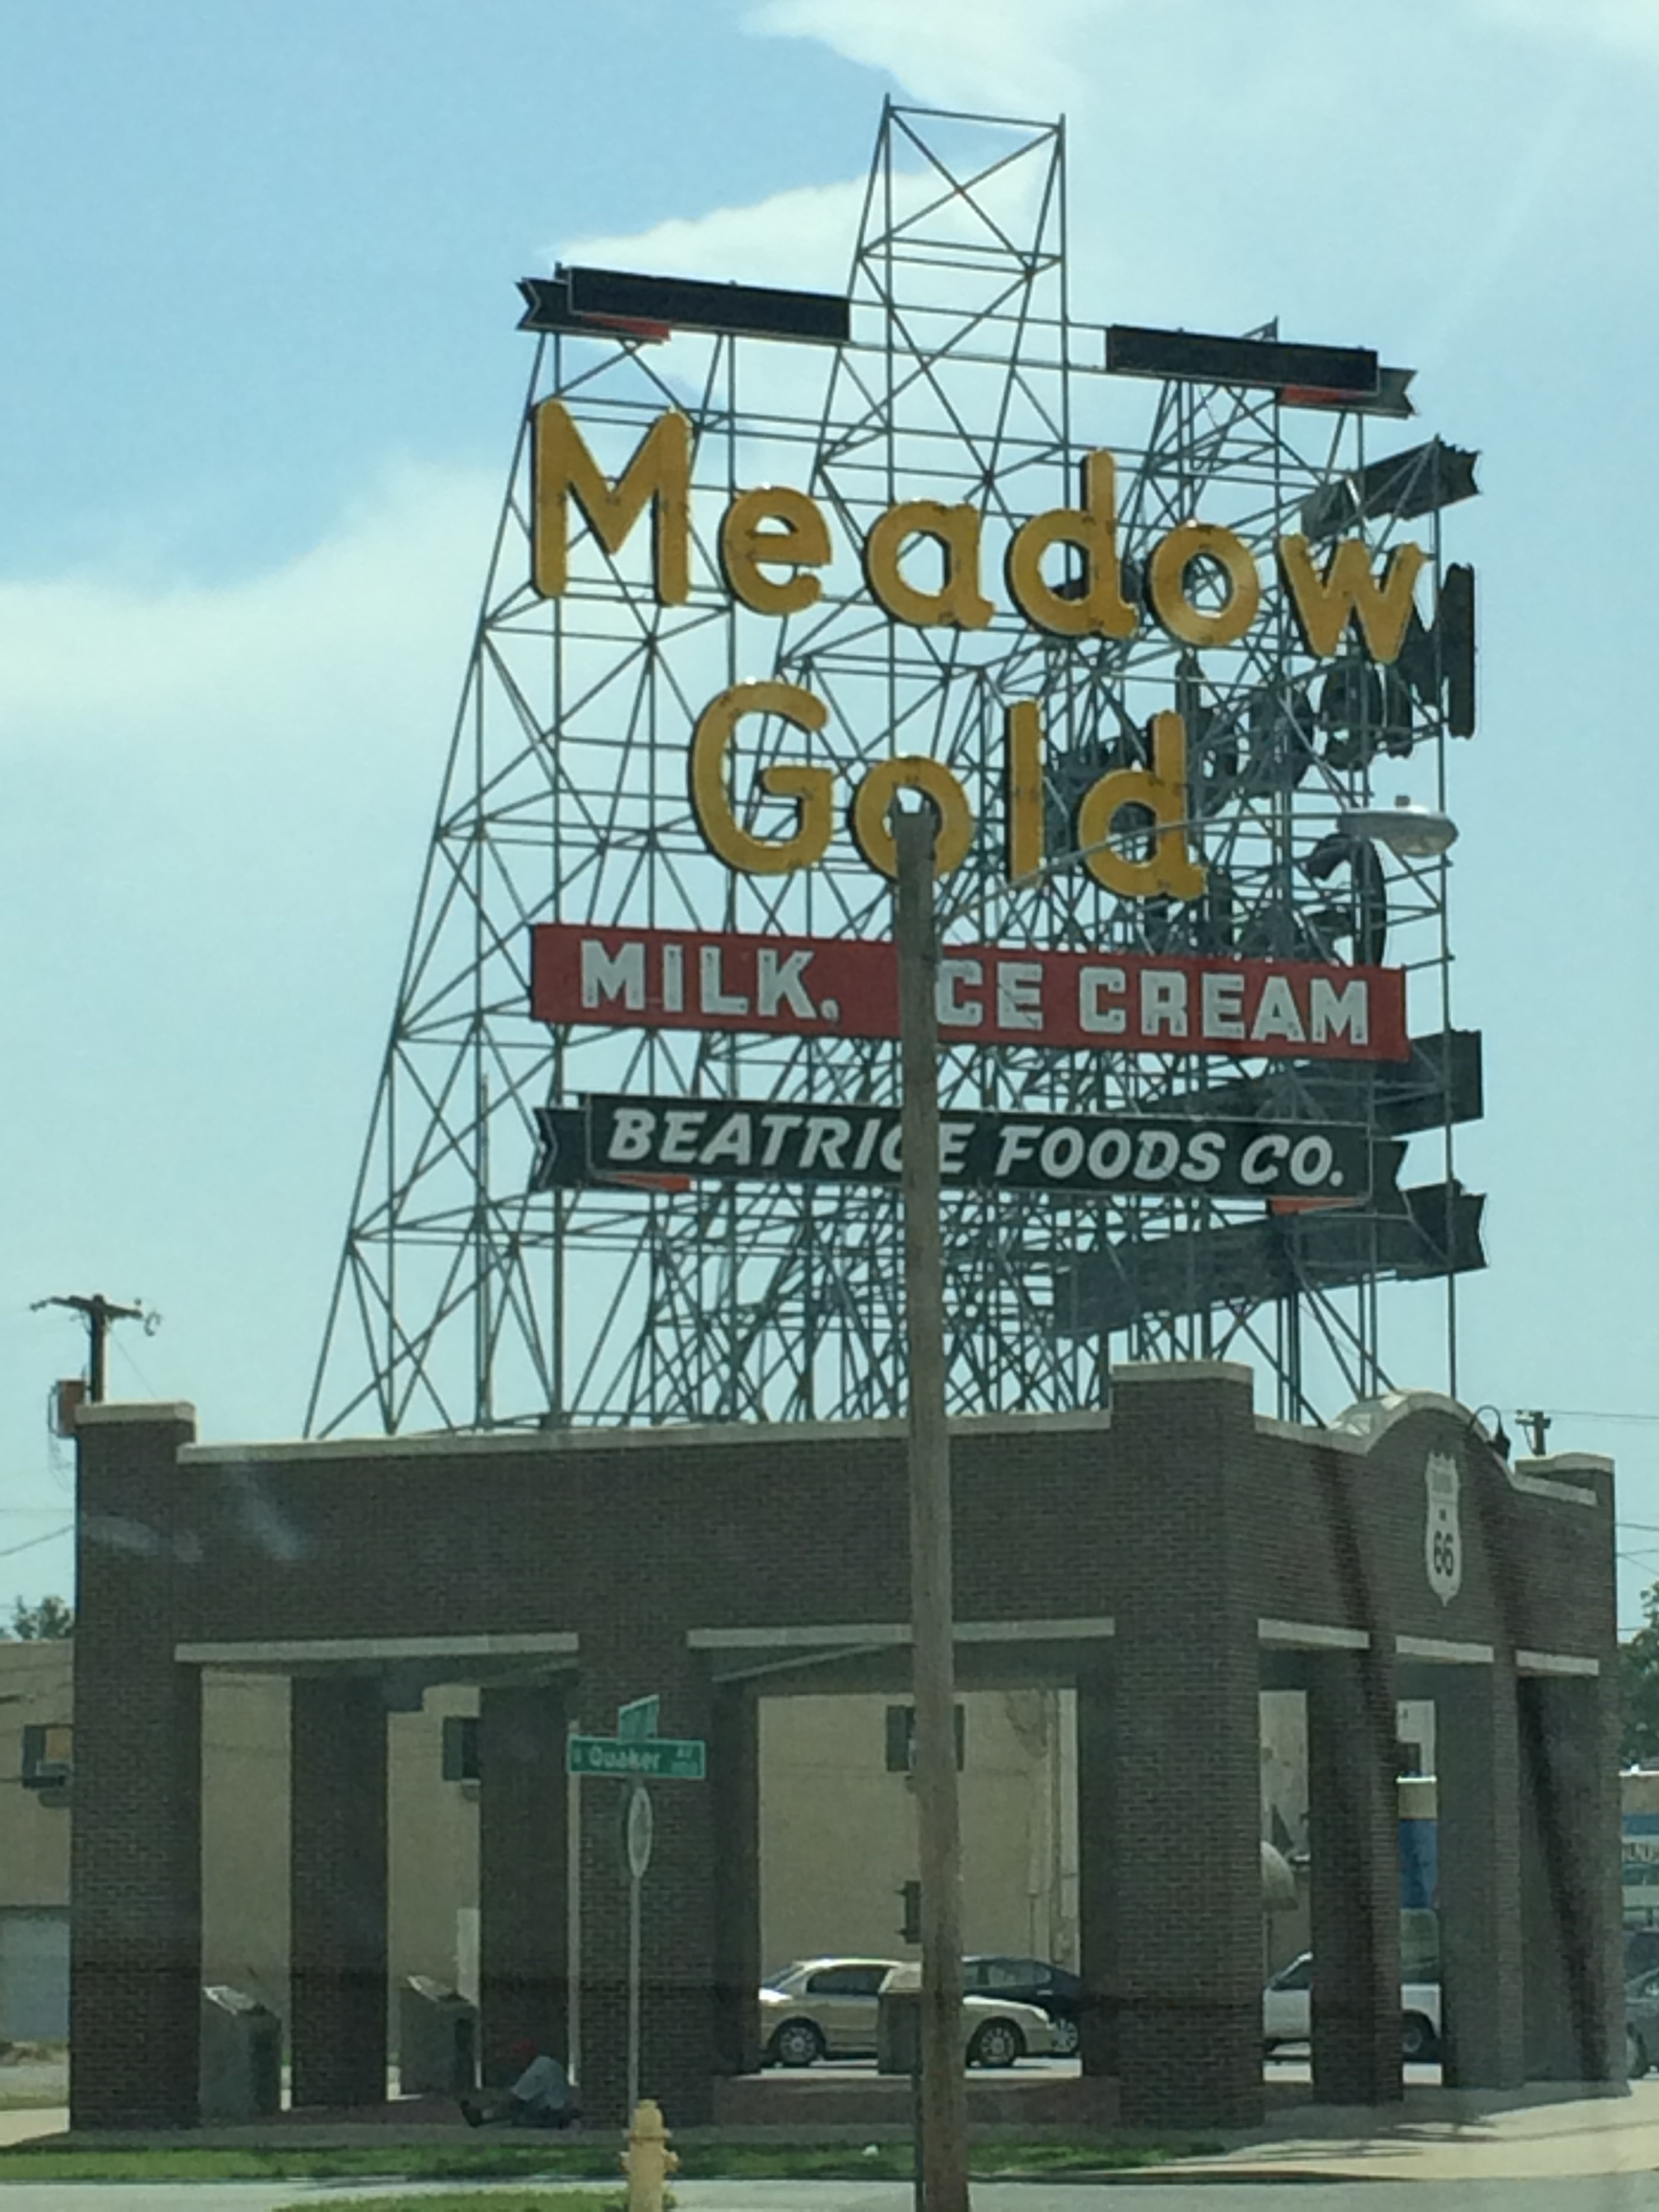 The Meadow Gold dairy goods sign in Tulsa now sits atop a pavilion with historical markers talking about the importance of the dairy to Tulsa instead of any of the remaining buildings from the plant.